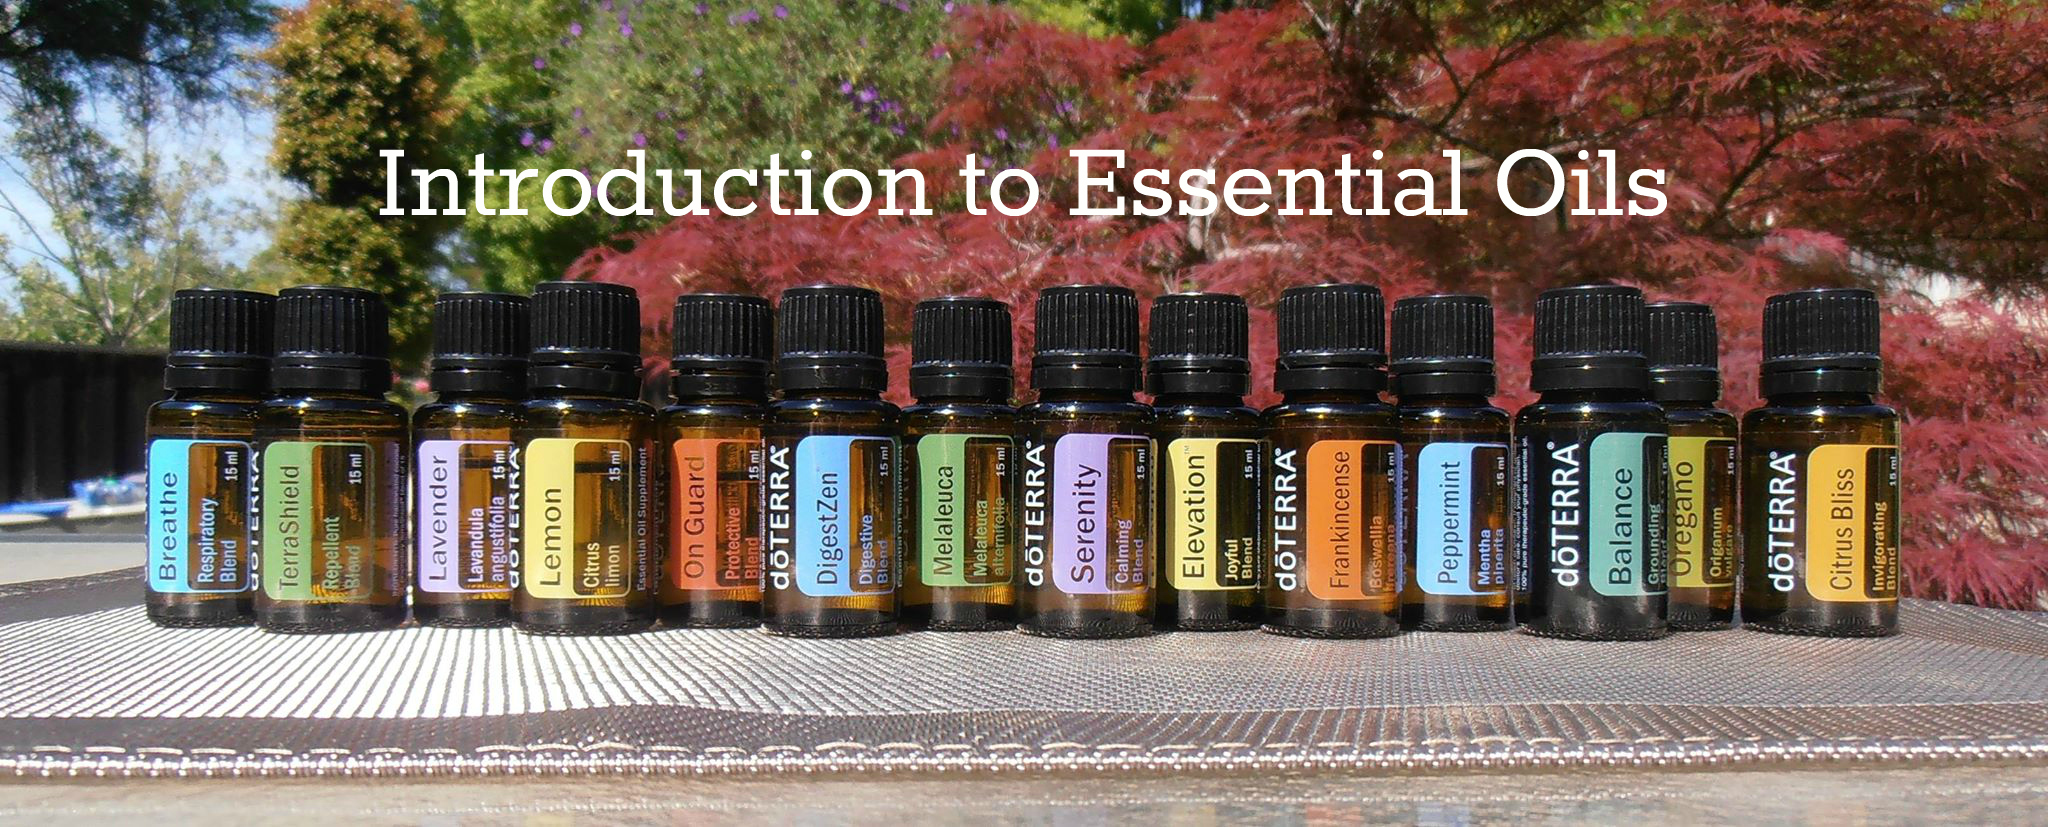 Essential oils events photo